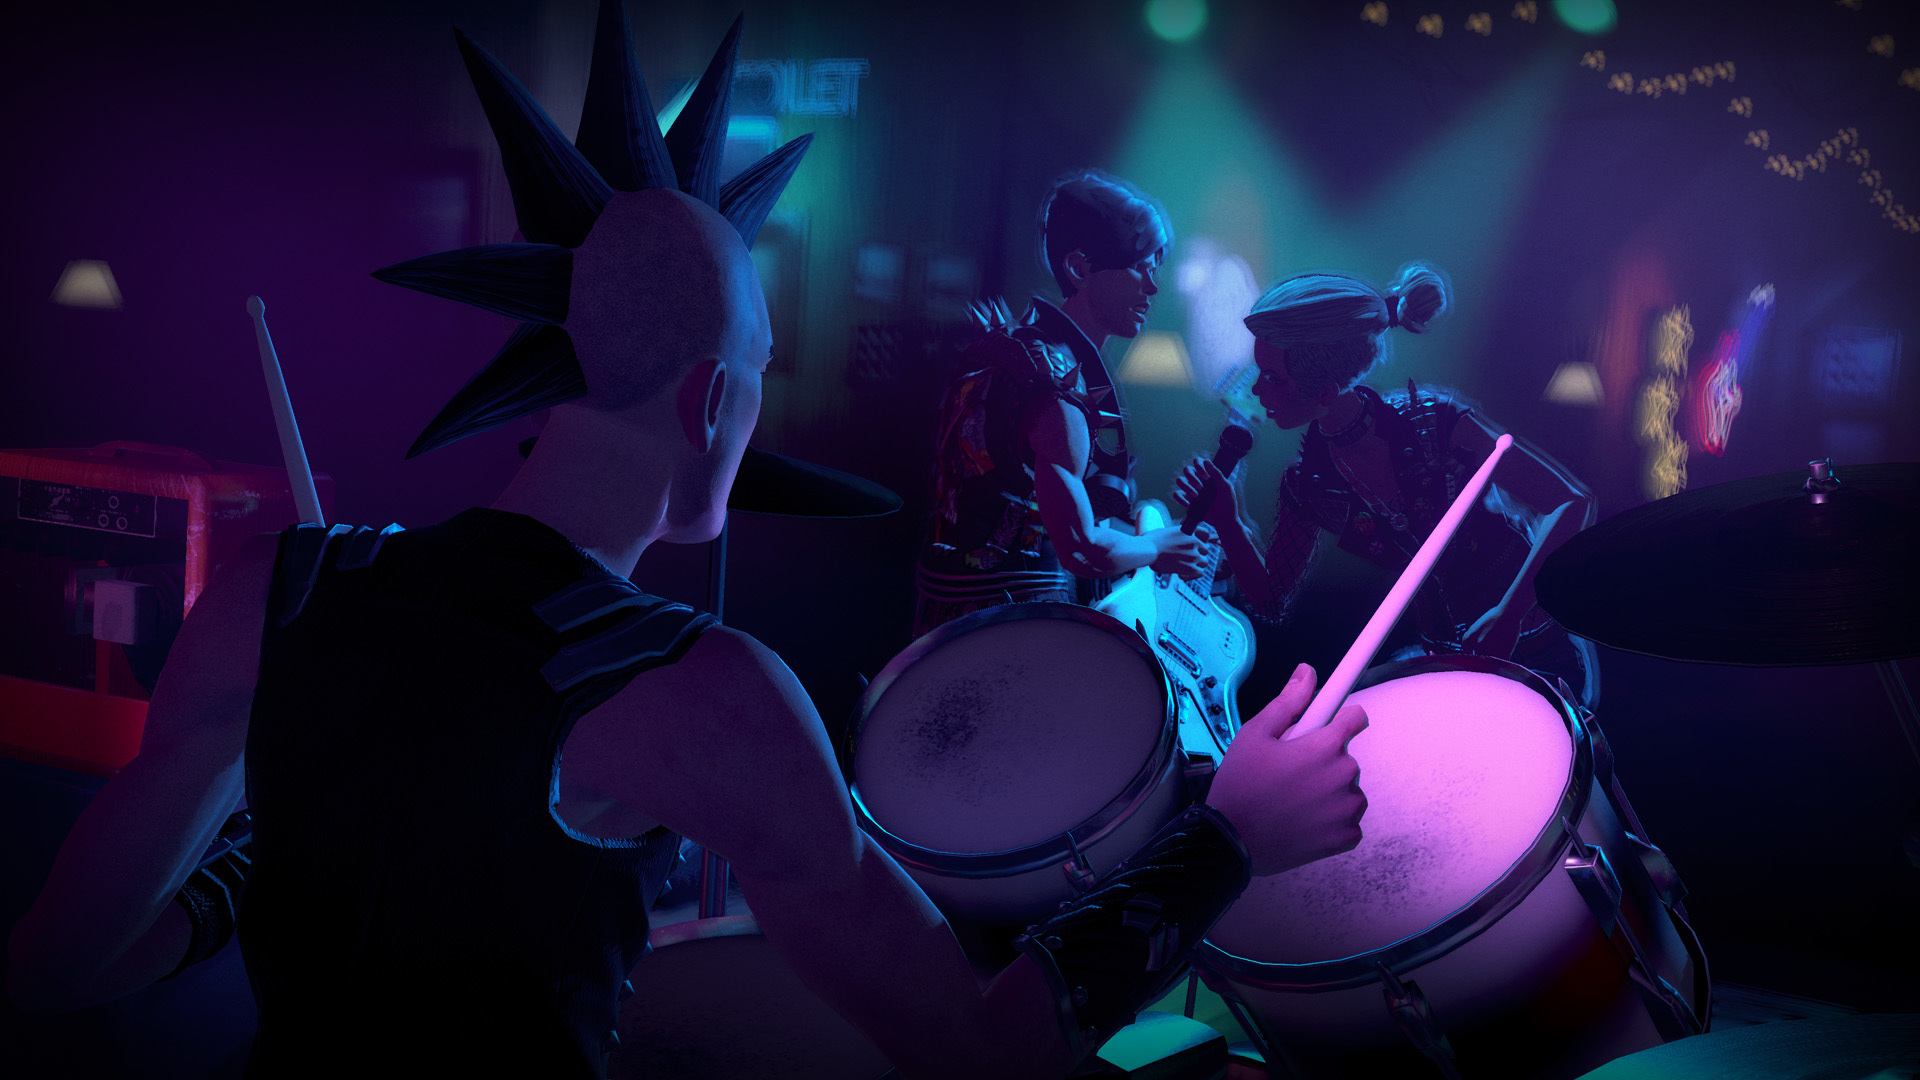 MadCatz cutting a third of staff after 'Rock Band 4' flop